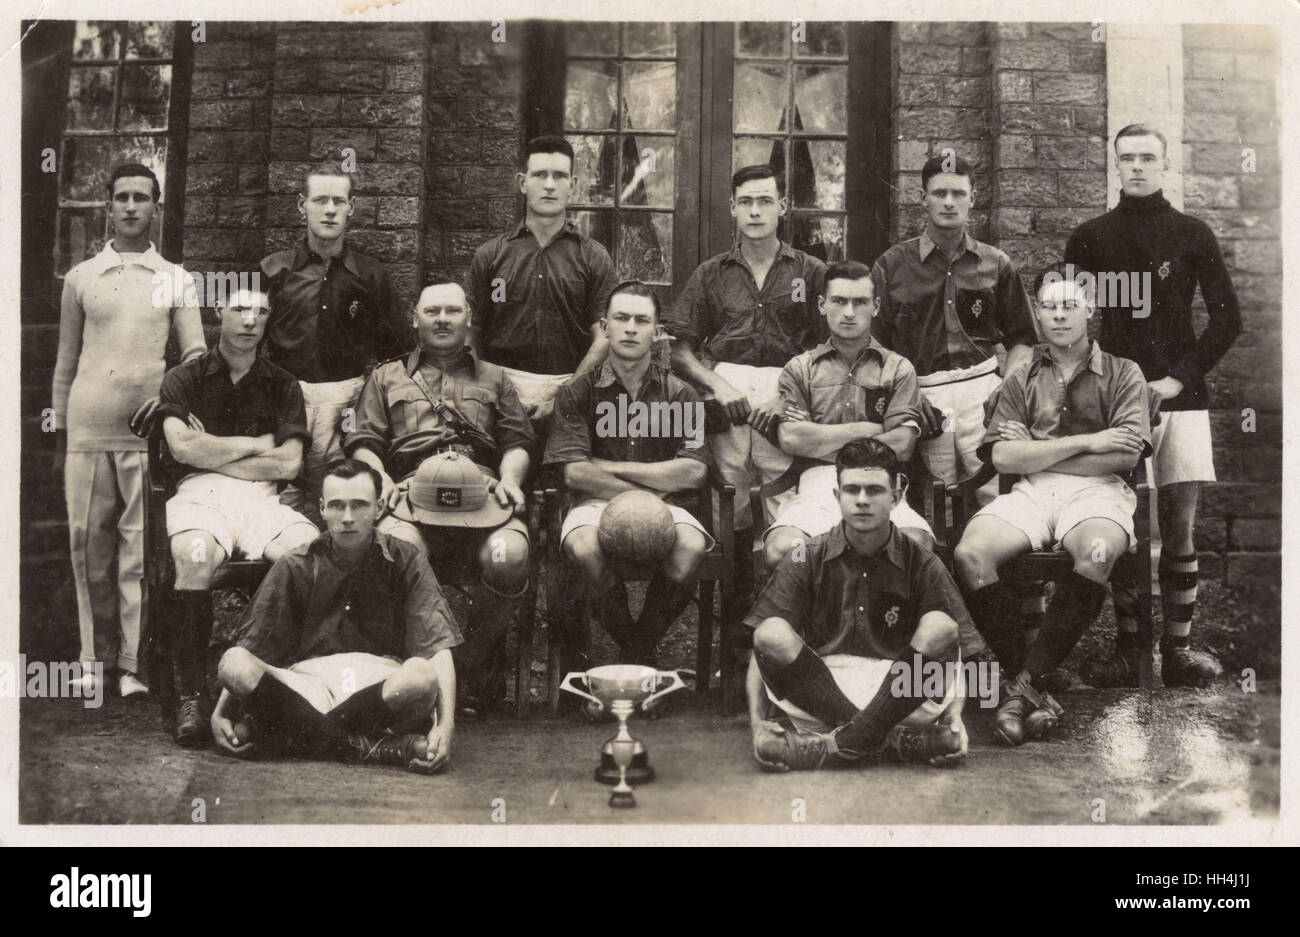 Group photo, Royal Sussex Regiment football team with ball and two trophies (unknown location). - Stock Image